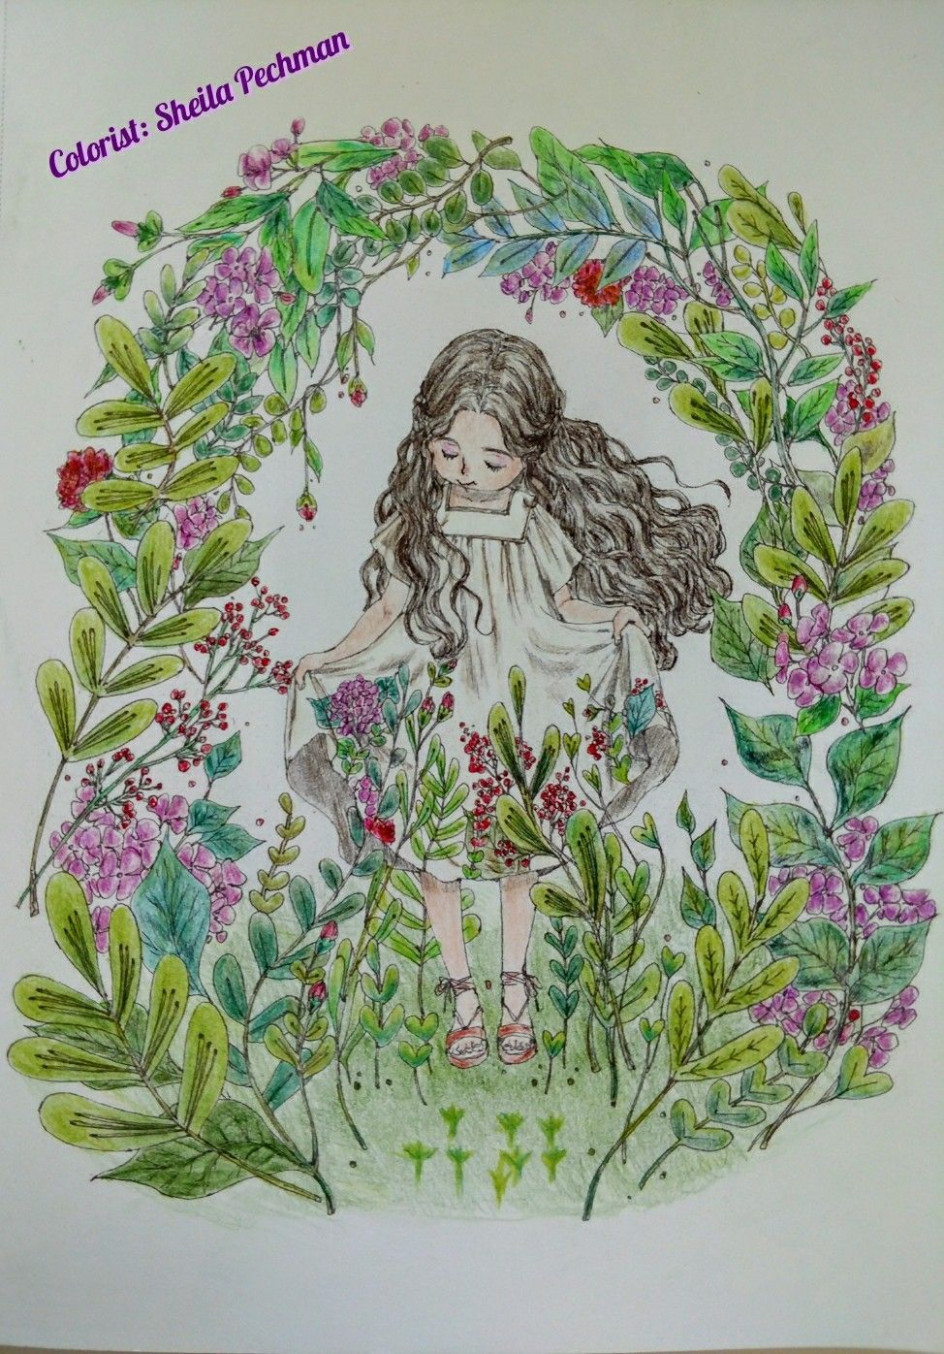 Forest Girl's Coloring Book Artist: Aeppol Colored by me on December ..